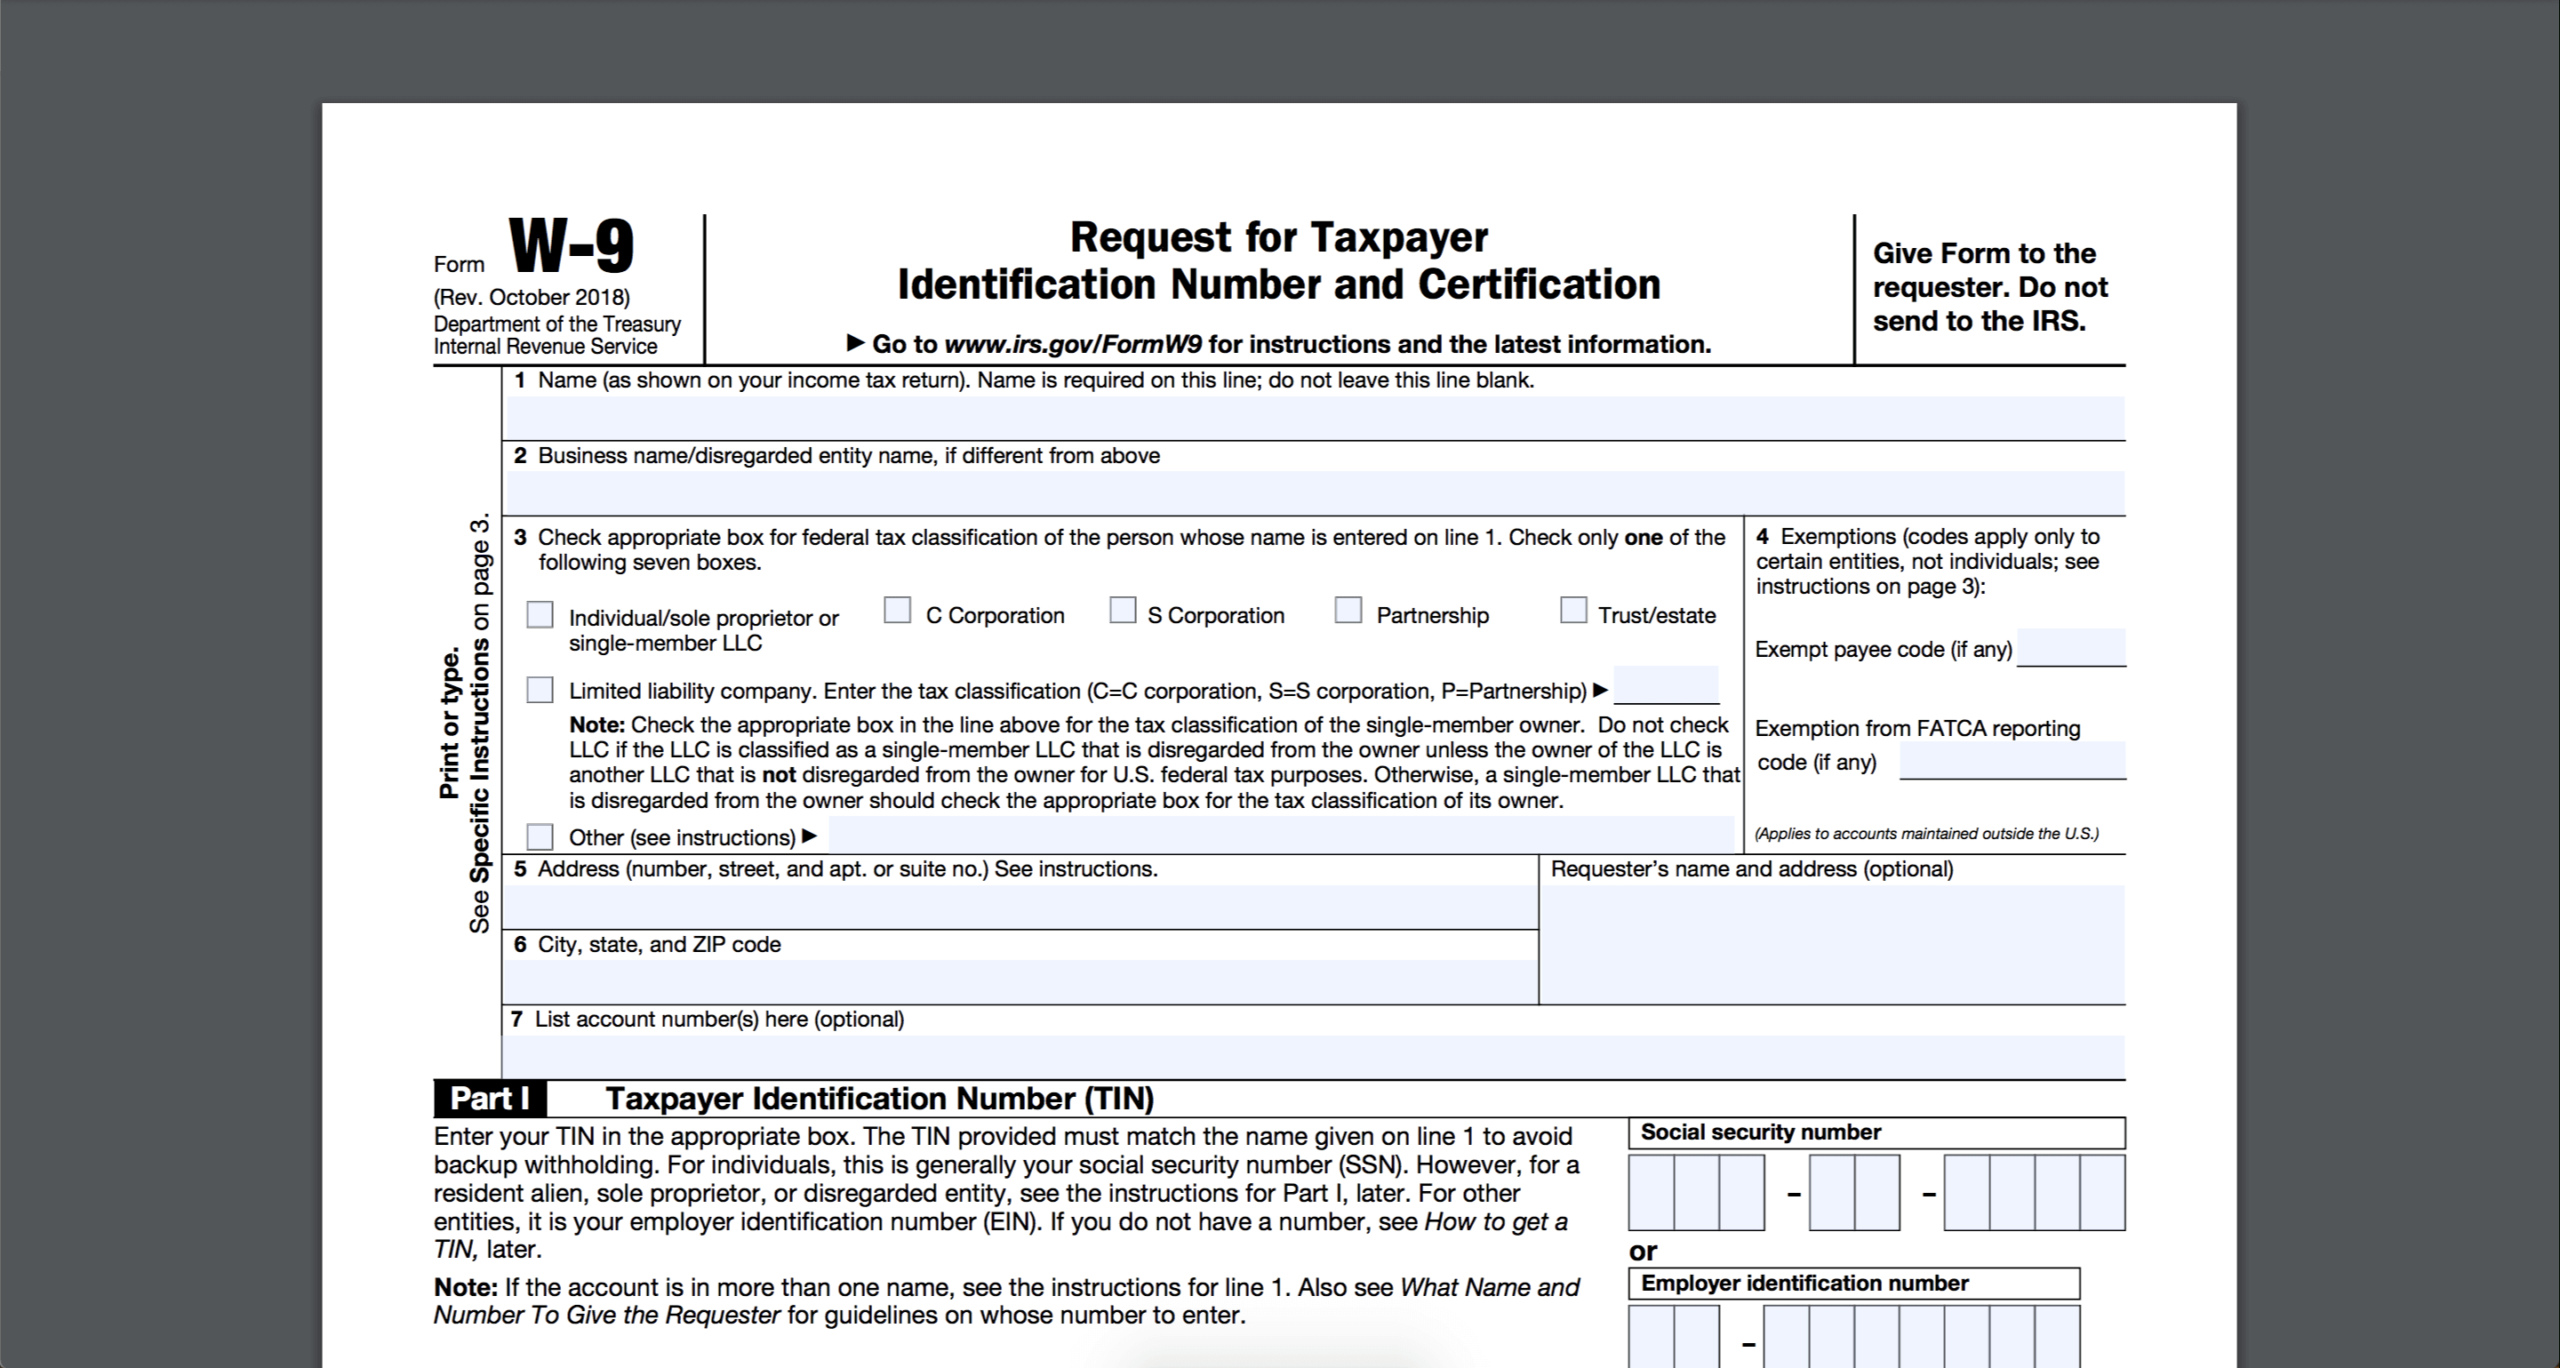 How To Fill Out And Sign Your W-9 Form Online pertaining to Form Irs W 9